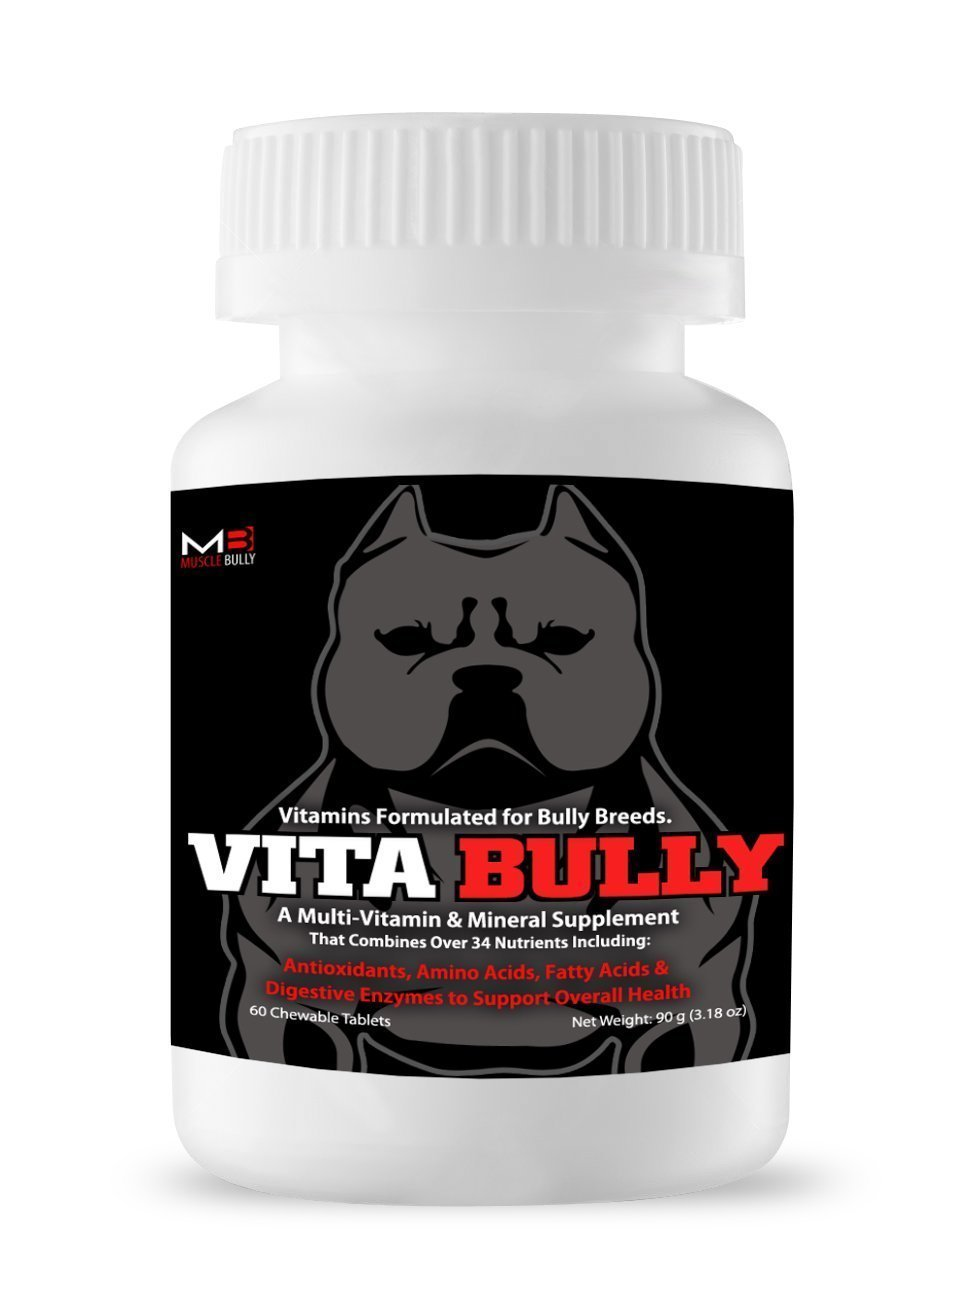 60 Vitamins Vita Bully Vitamins for Bully Breeds  Pit Bulls, American Bullies, Exotic Bullies, Bulldogs, Pocket Bullies, Made in the USA